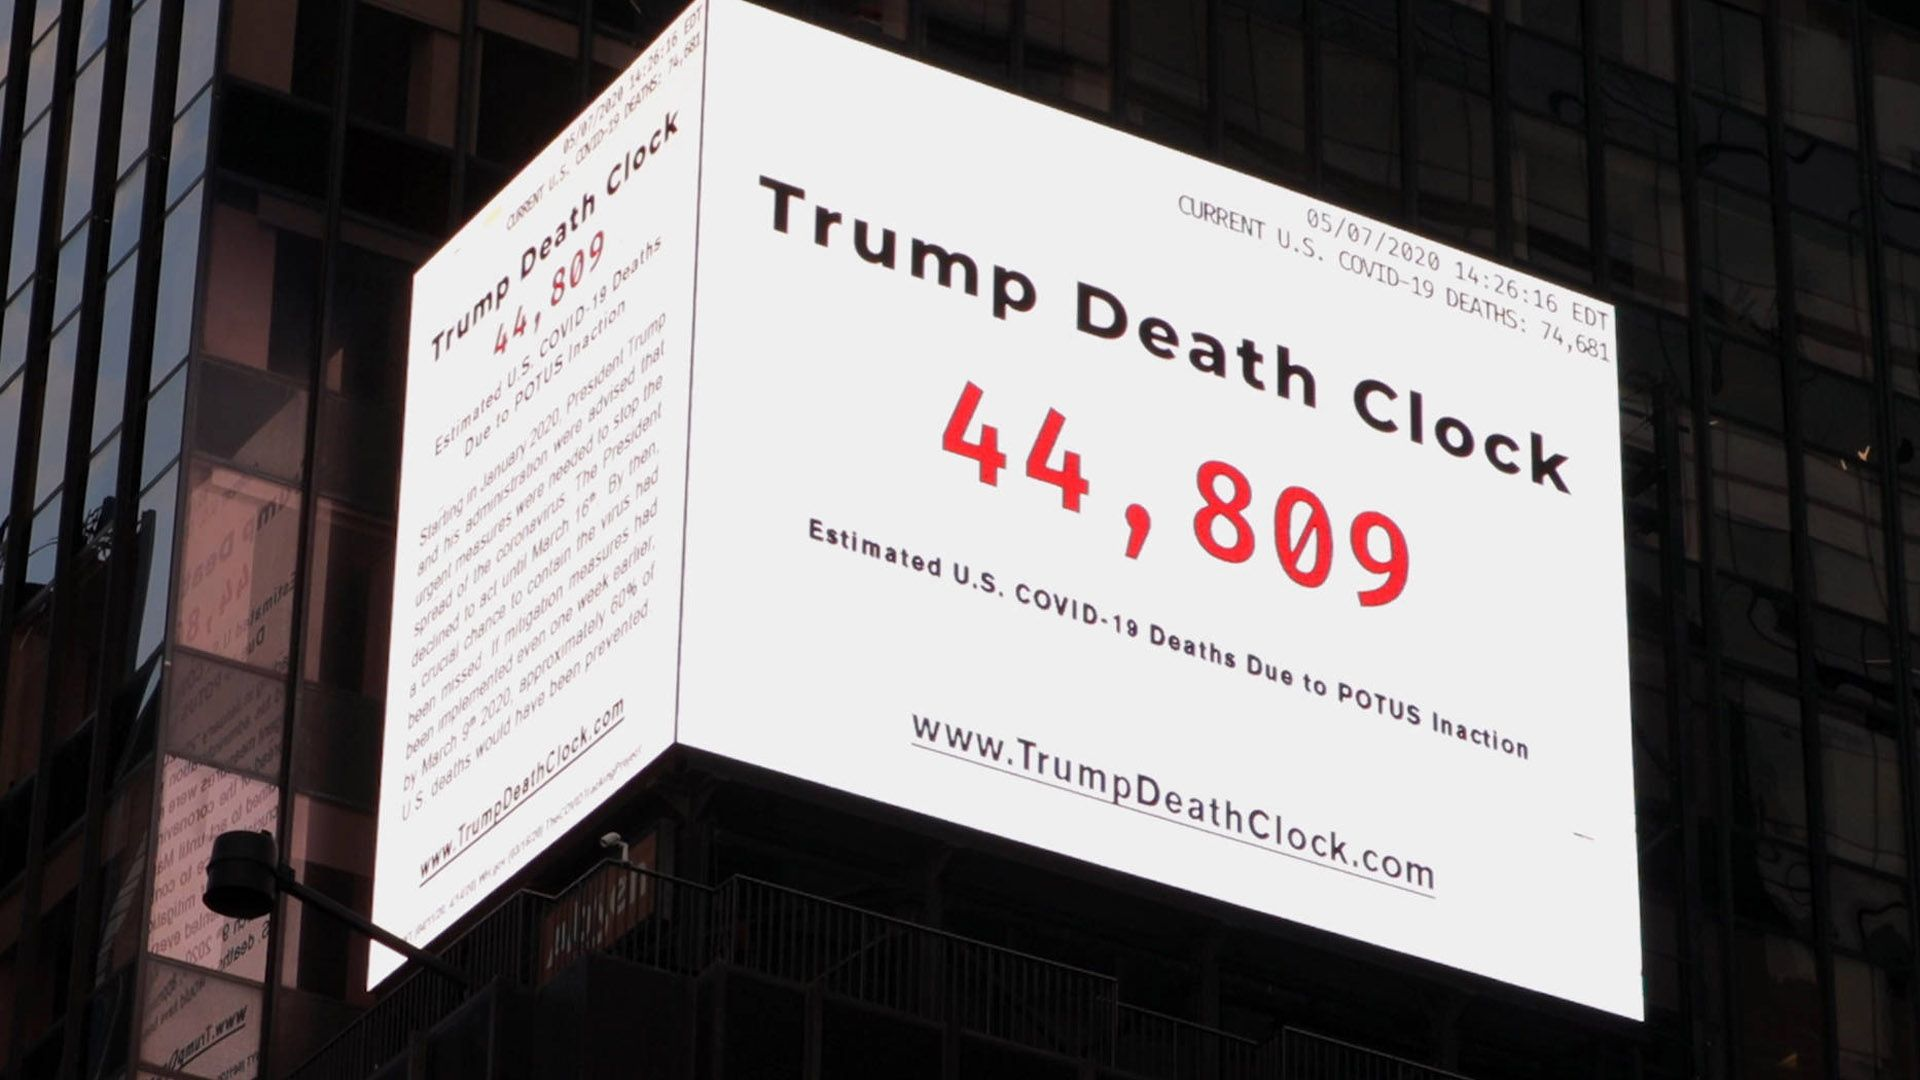 'Trump Death Clock' in New York counts preventable US Covid-19 deaths